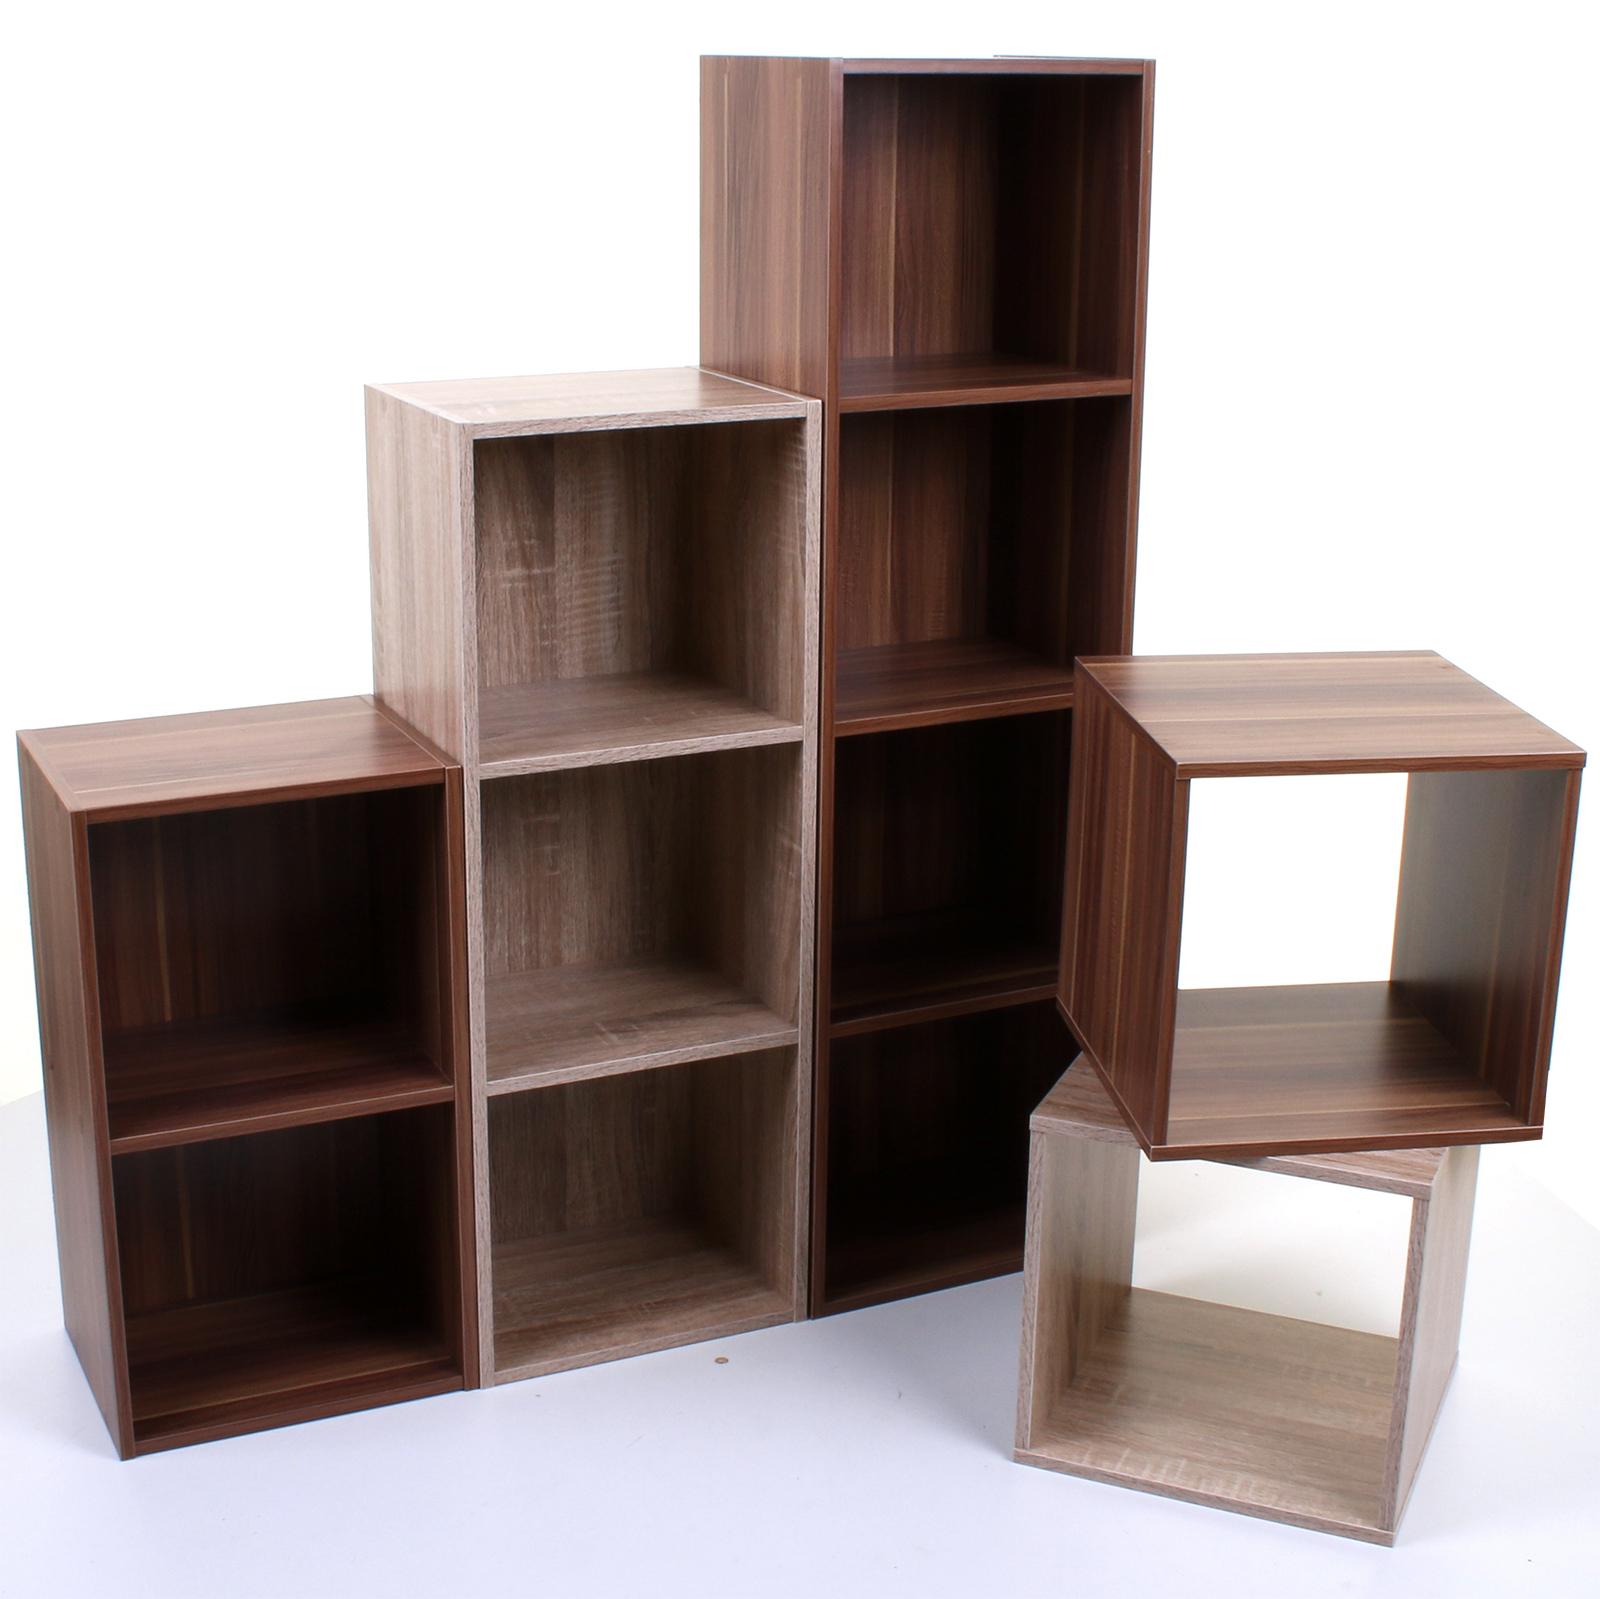 cube storage shelves 2 3 4 tier wooden bookcase shelving display shelves 10463